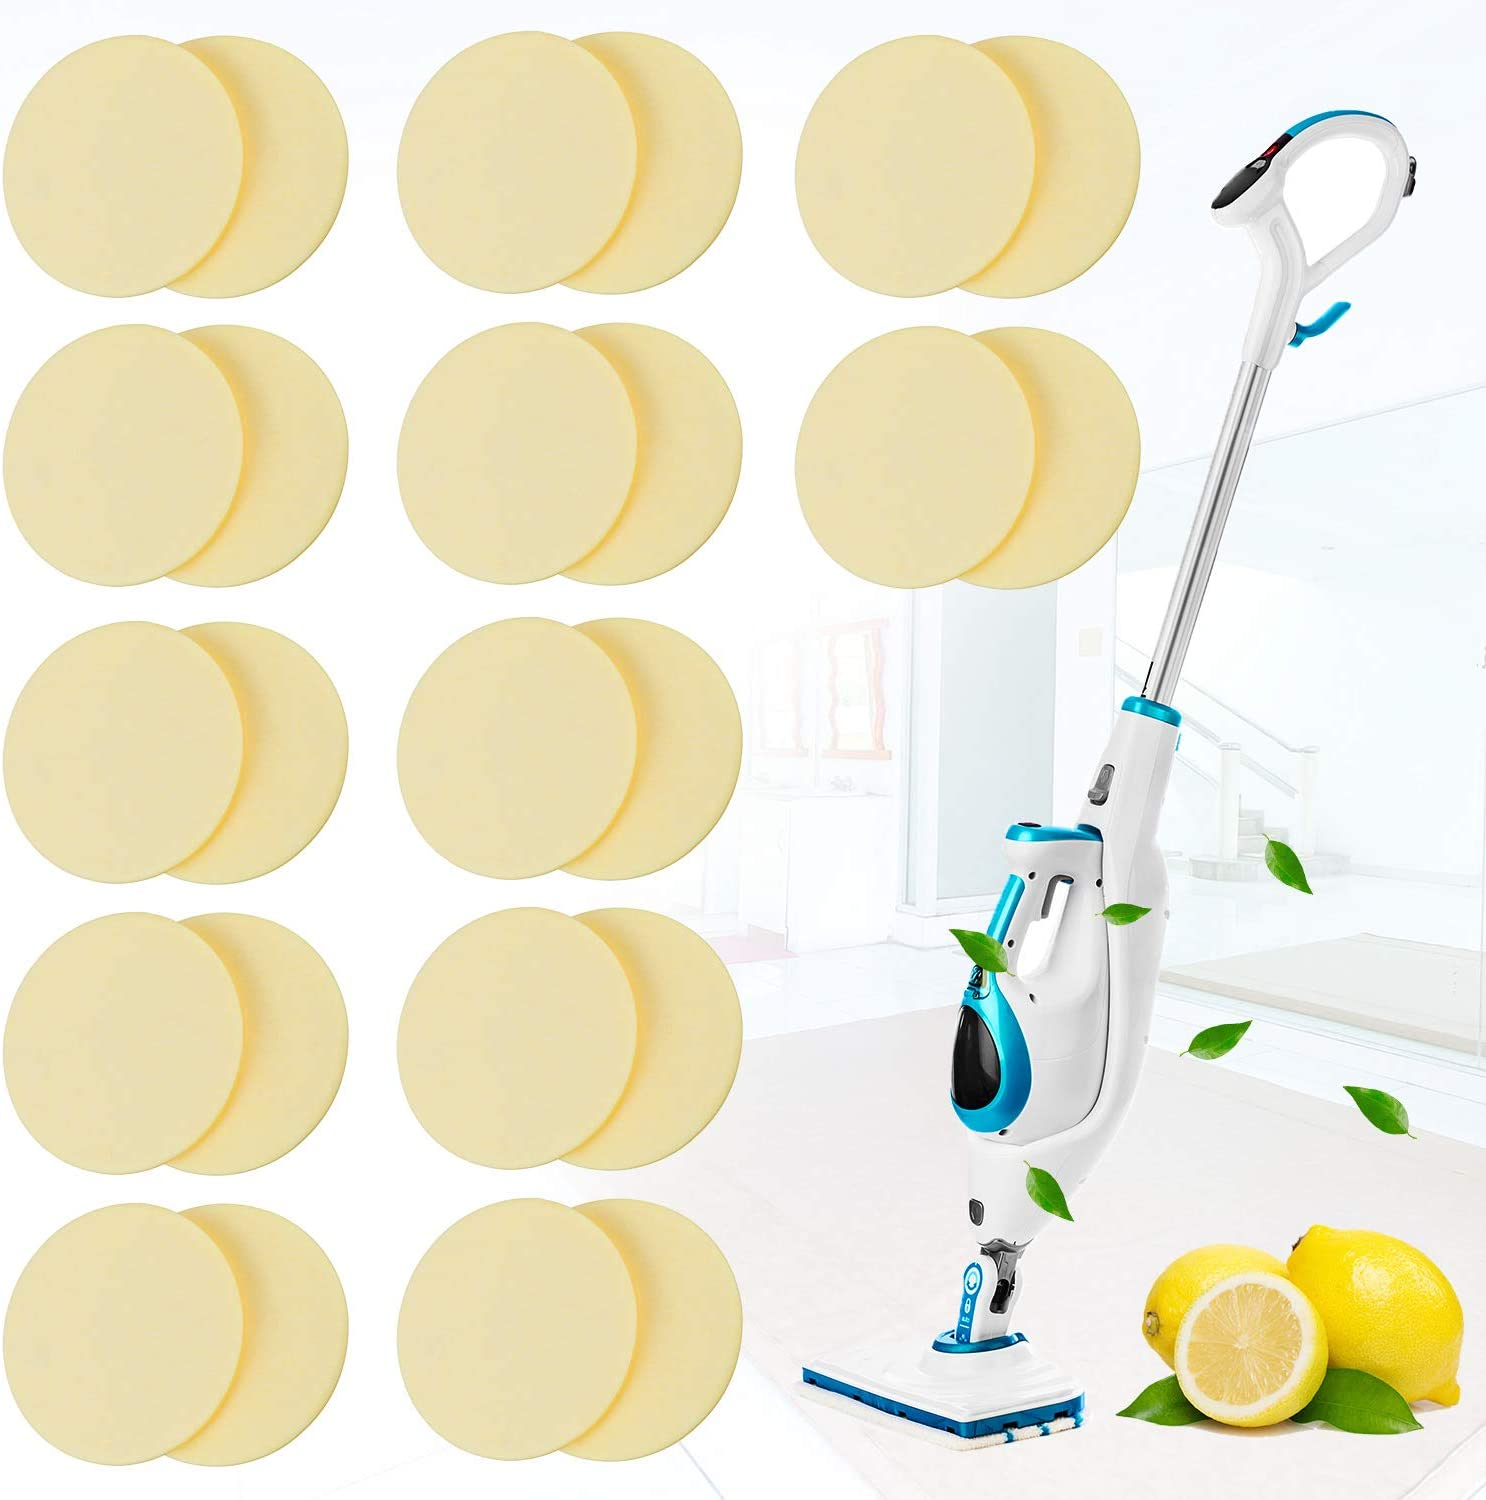 24 Pack Replacement Steam Mop Scent Discs Steam Mop Fragrance Discs Pads Compatible with Bissell Powerfresh and Symphony Series Fits Model 1940, 1806 and 1132, Lemon Fresh Fragrance